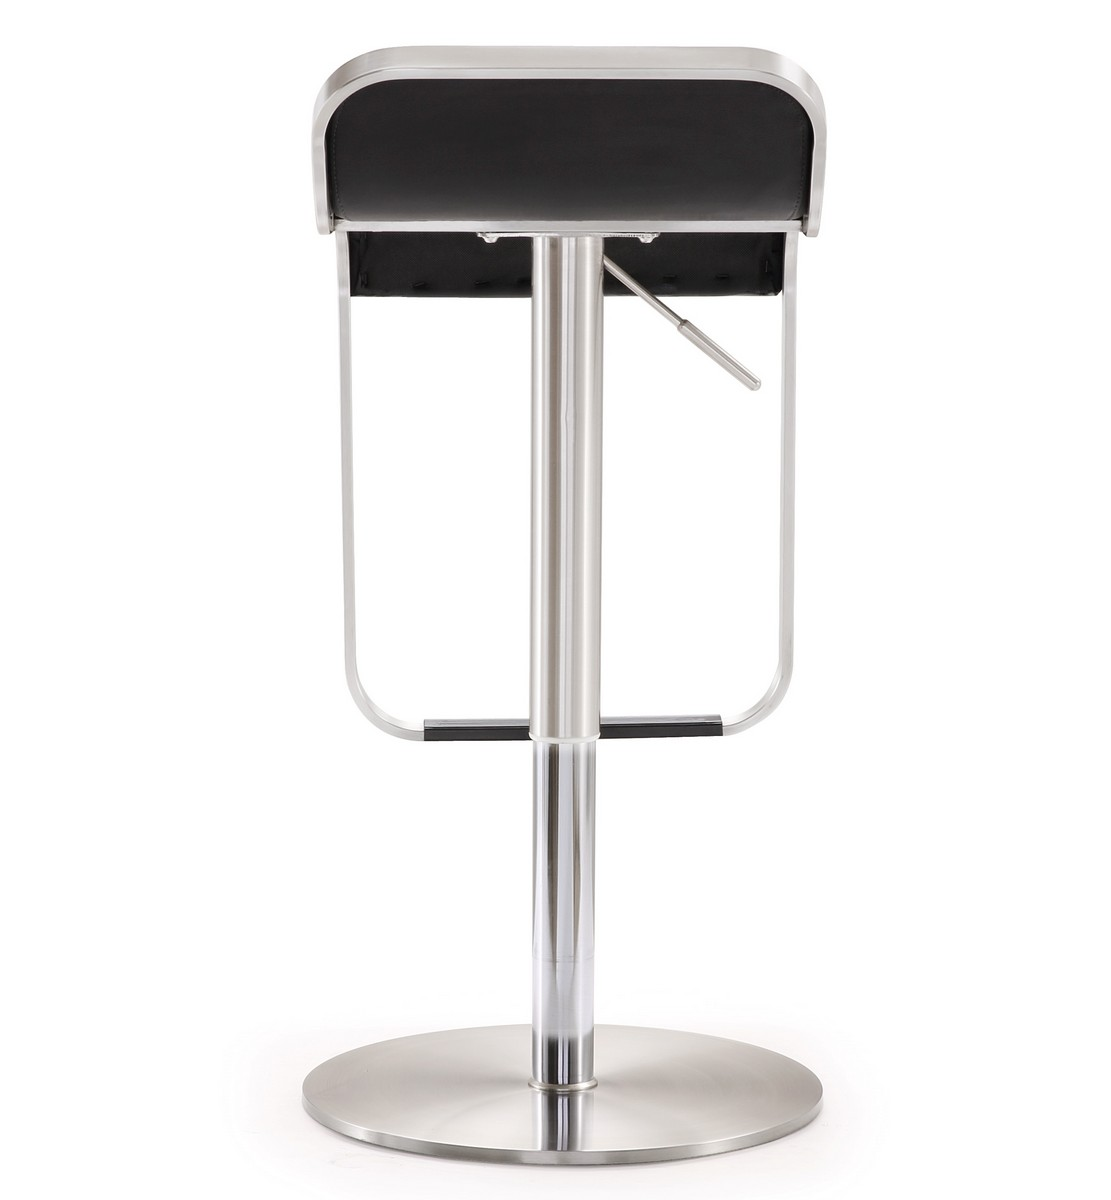 TOV Furniture Napoli Black Stainless Steel Adjustable Barstool